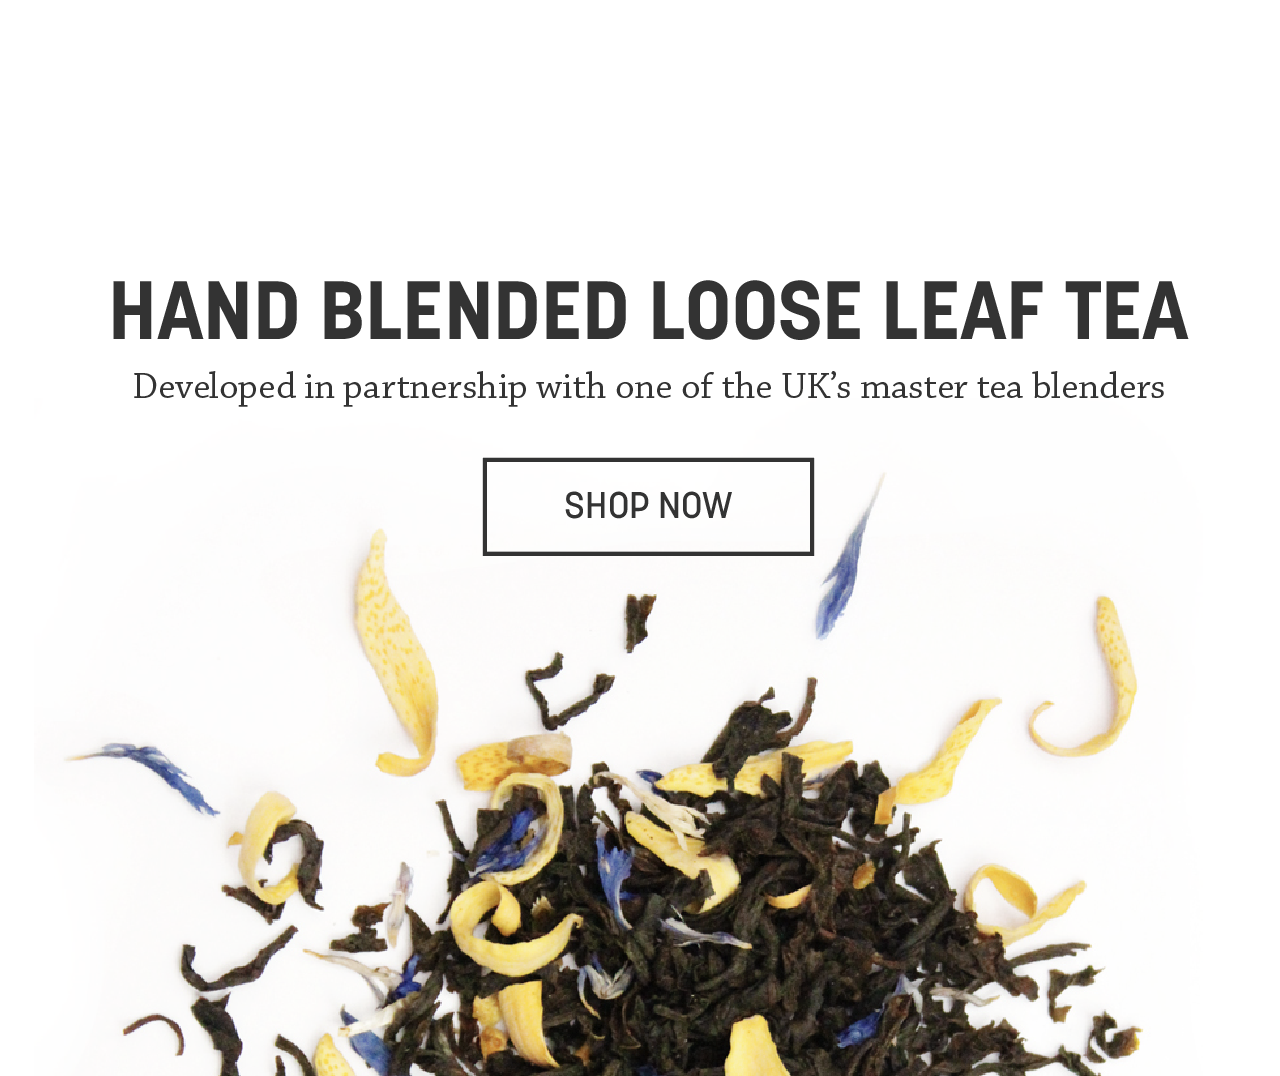 Hand Blended Loose Leaf Tea  Developed in partnership with one of the UK's master tea blenders